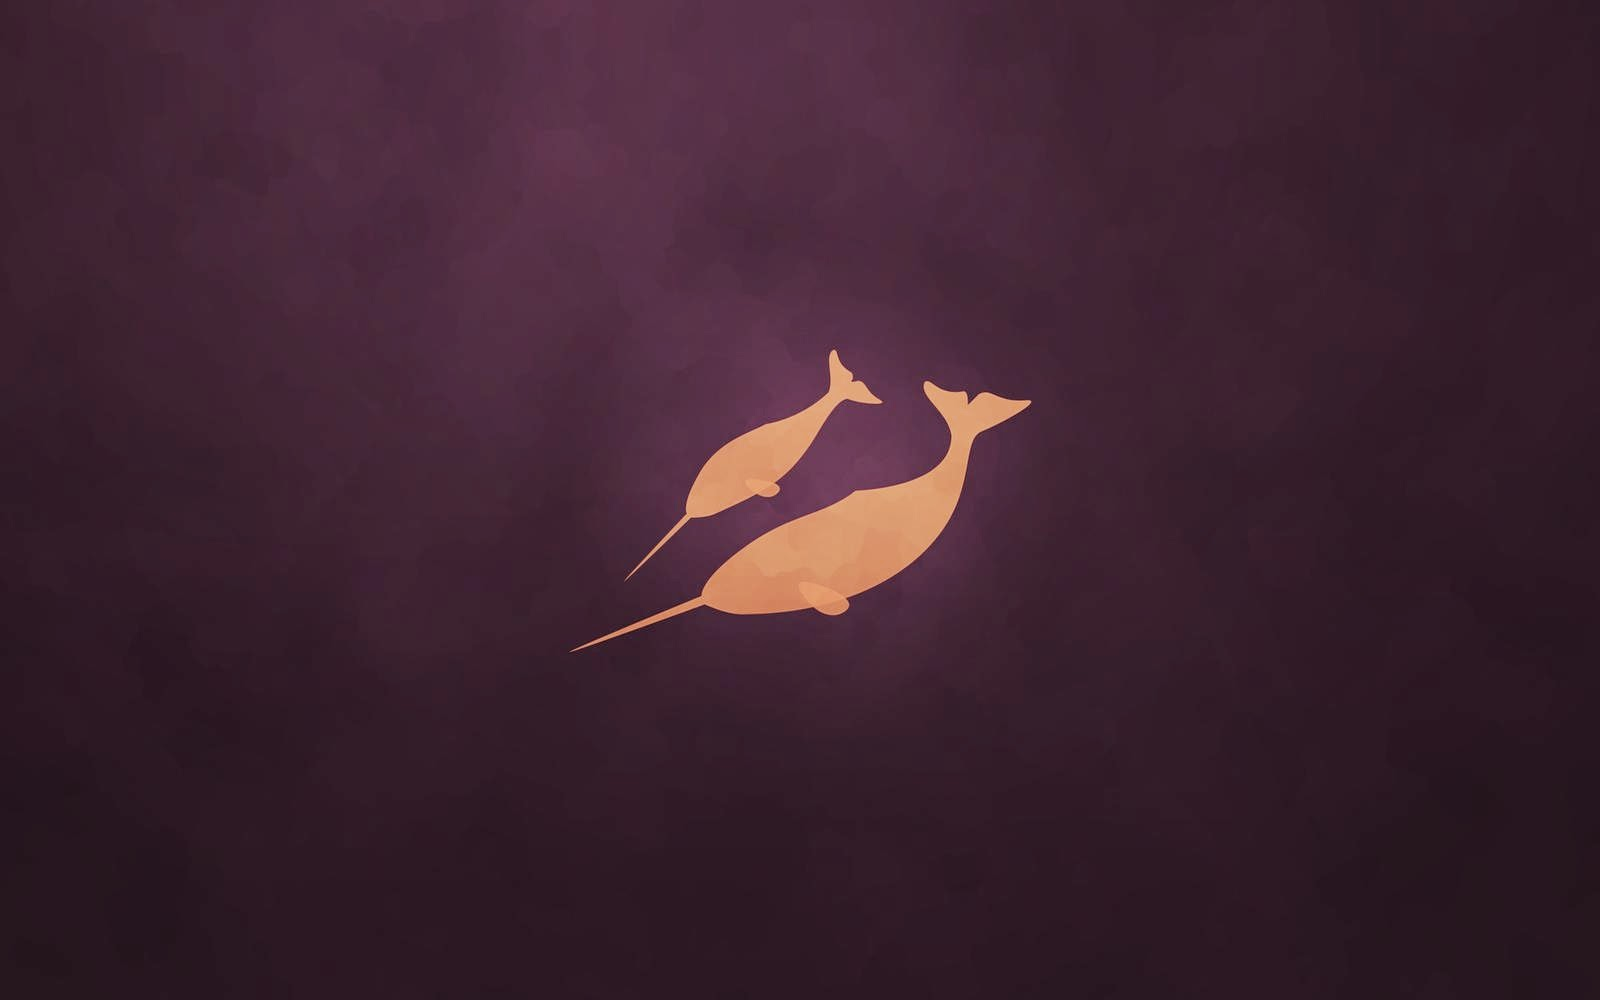 Download All The Ubuntu Community Wallpapers From Karmic To Trusty